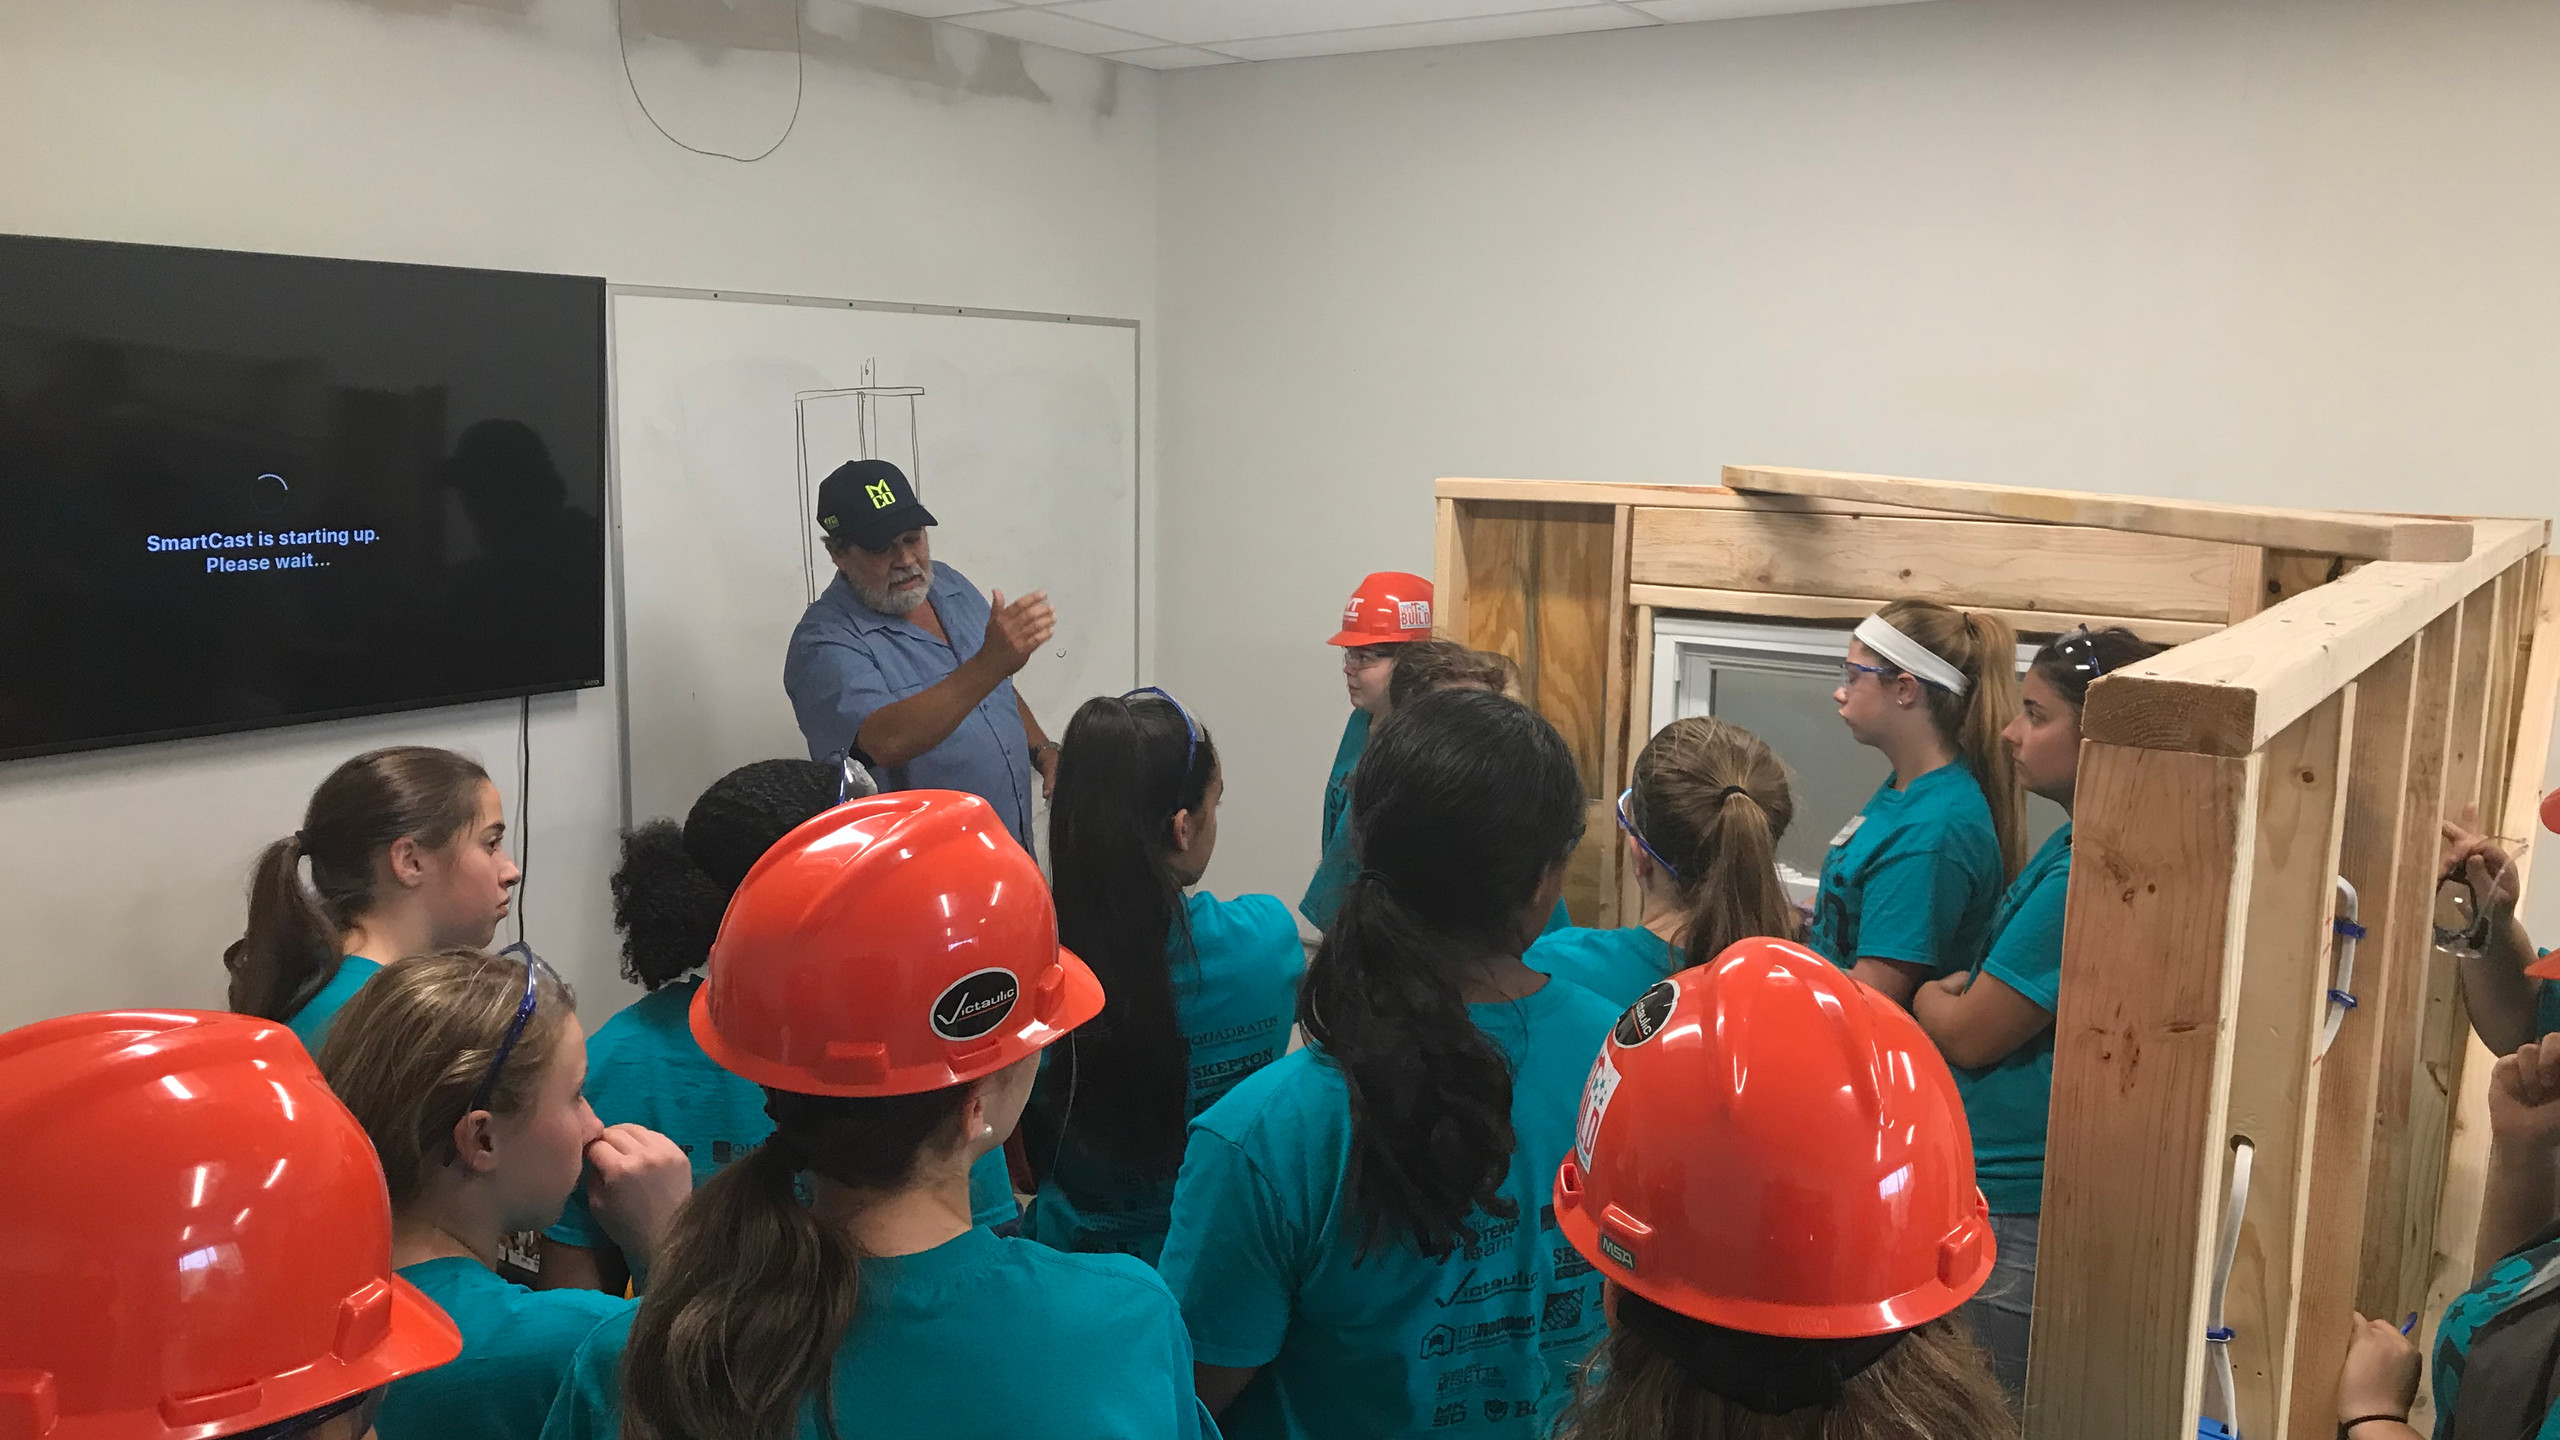 Stan Cordova, of Myco Mechanical, teaching Plumbing to the campers.